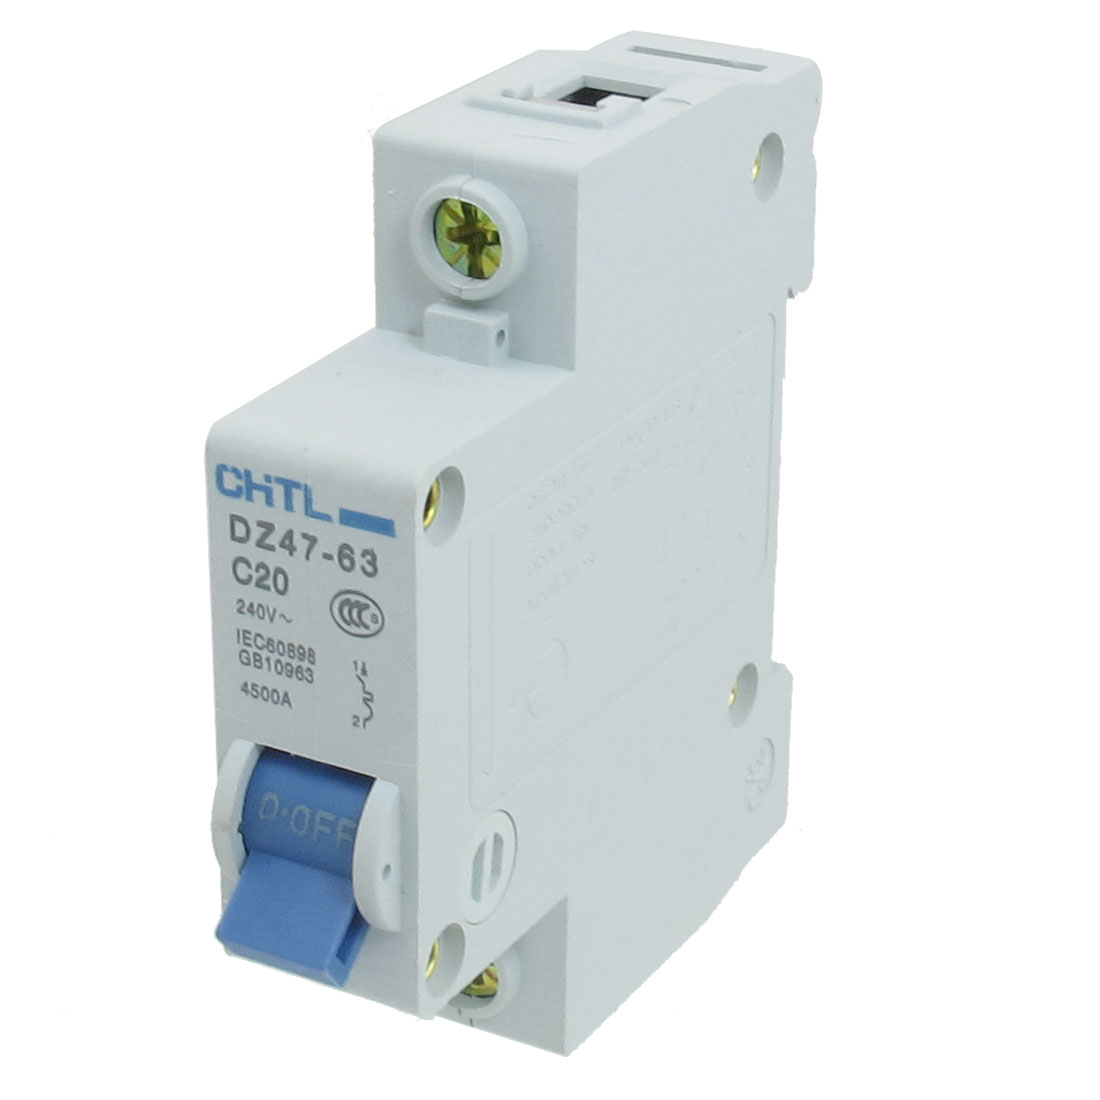 AC 240V Rated Current 20A Single Pole Miniature Circuit Breaker